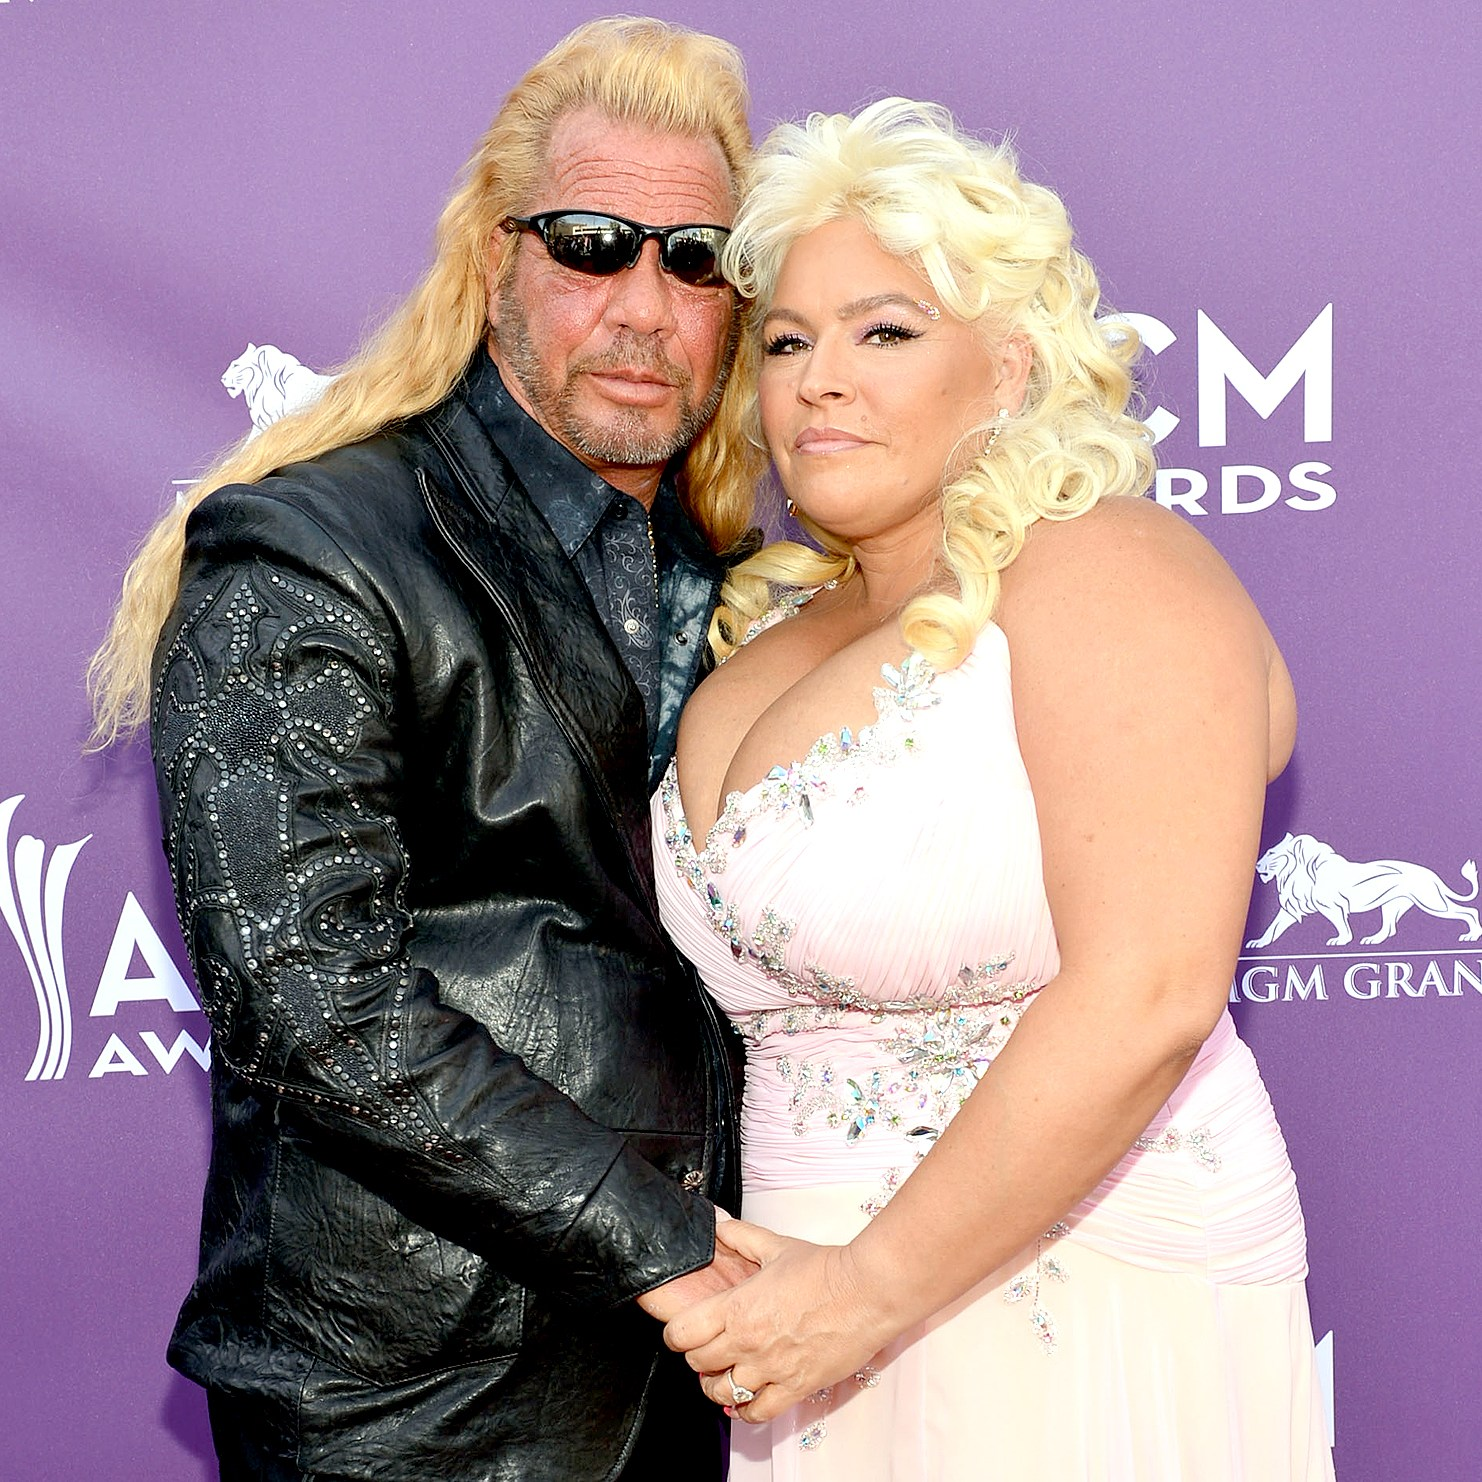 """Duane """"Dog"""" Chapman and Beth Smith attend the 48th Annual Academy of Country Music Awards at the MGM Grand Garden Arena on April 7, 2013 in Las Vegas, Nevada."""